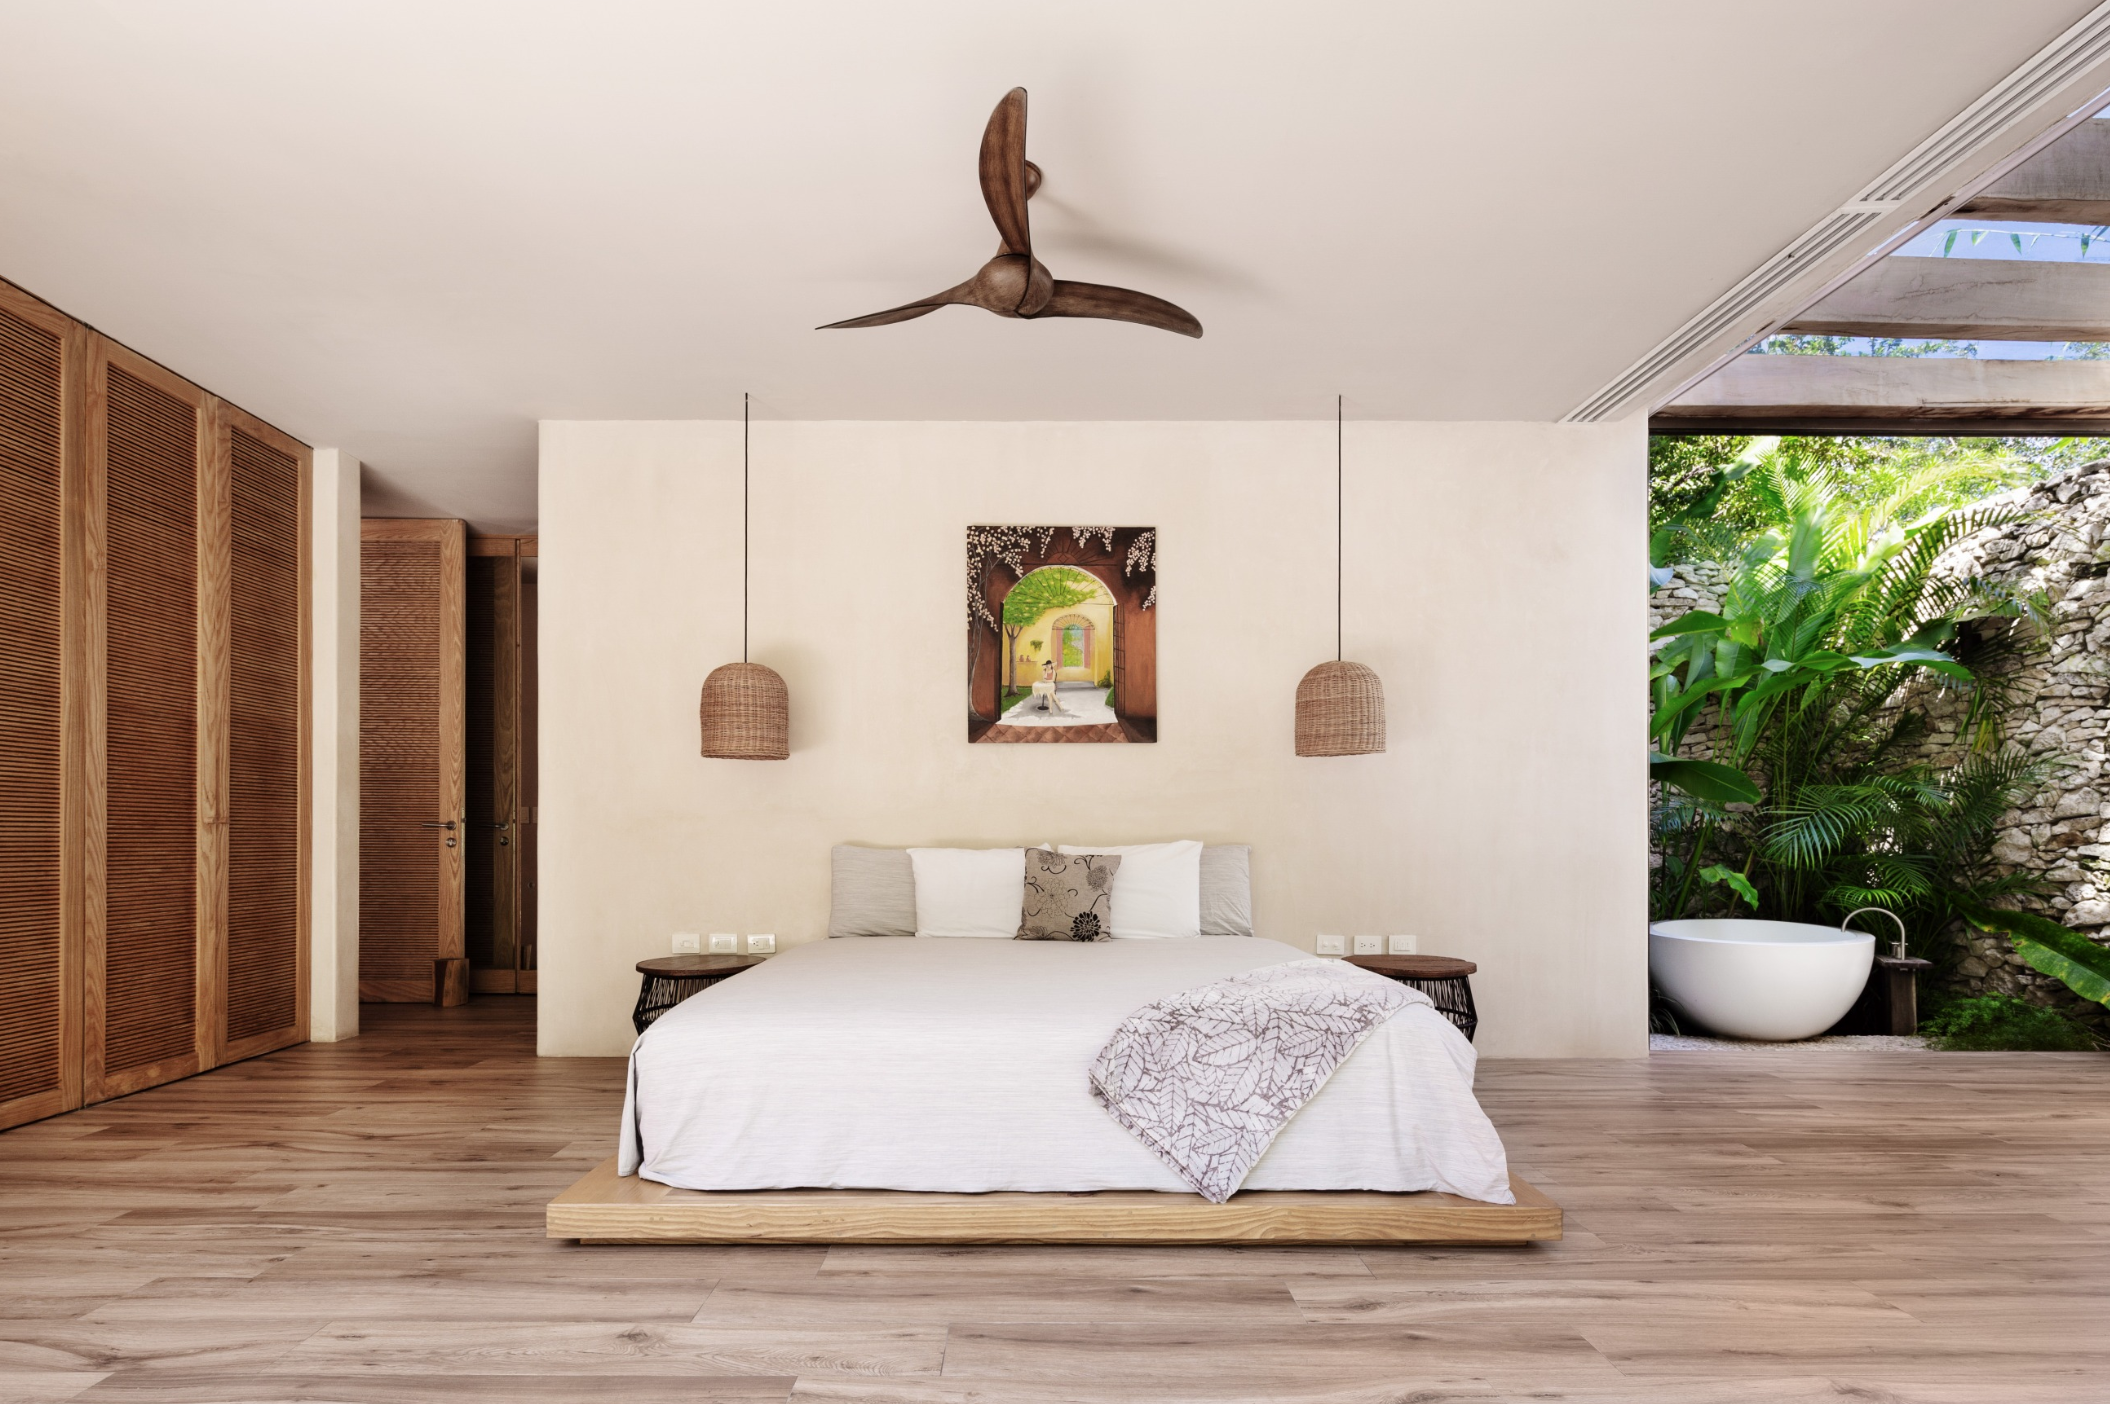 One of the bedrooms of Villa Verde. On the side of the bed is an opening to the outdoors, where a free-standing bathtub is located.